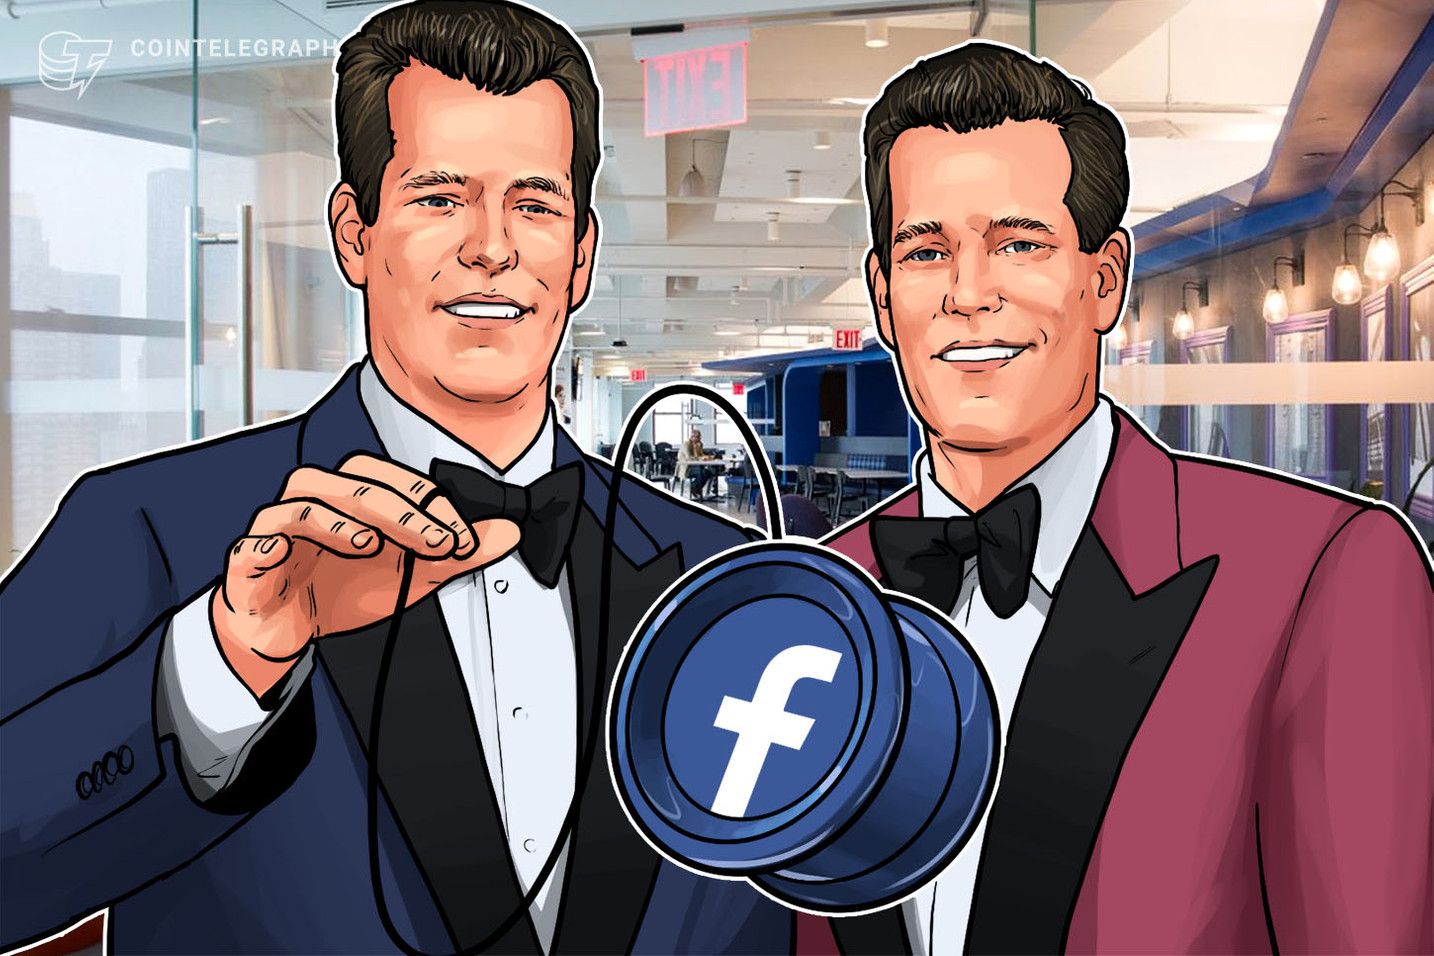 Winklevoss Twins Say They're 'In Talks' About Joining Libra Association